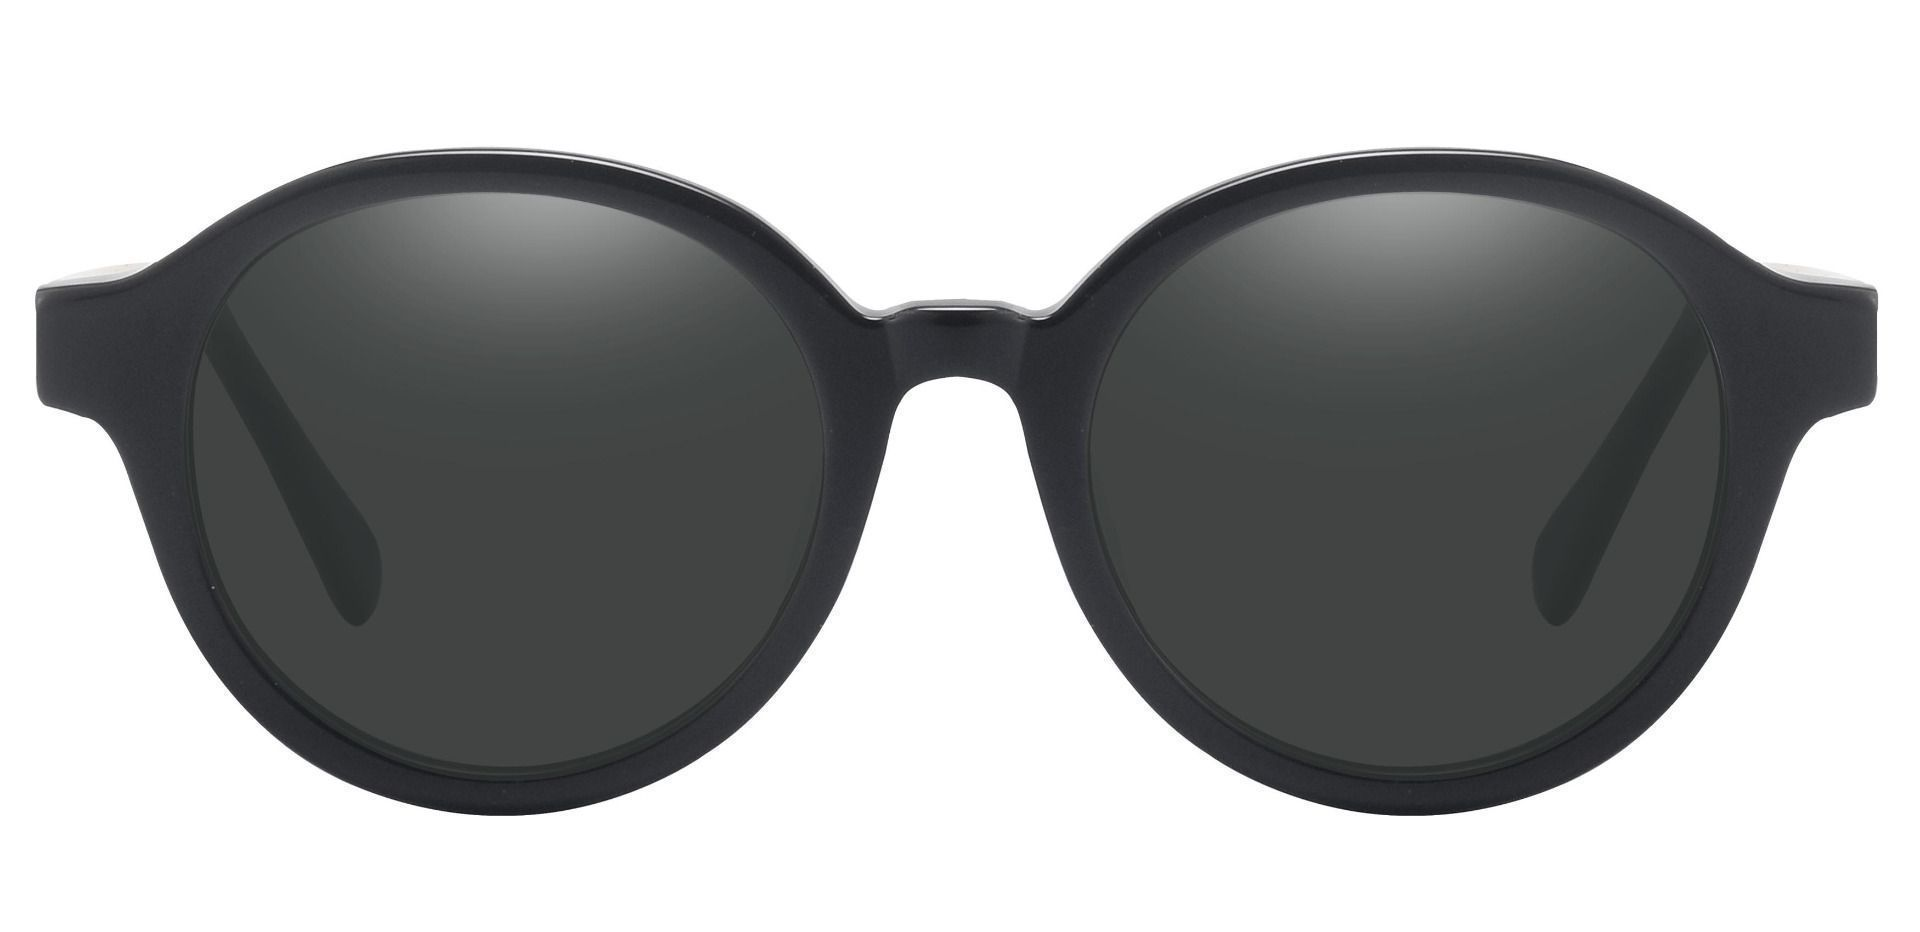 Steel City Round Reading Sunglasses - Black Frame With Gray Lenses